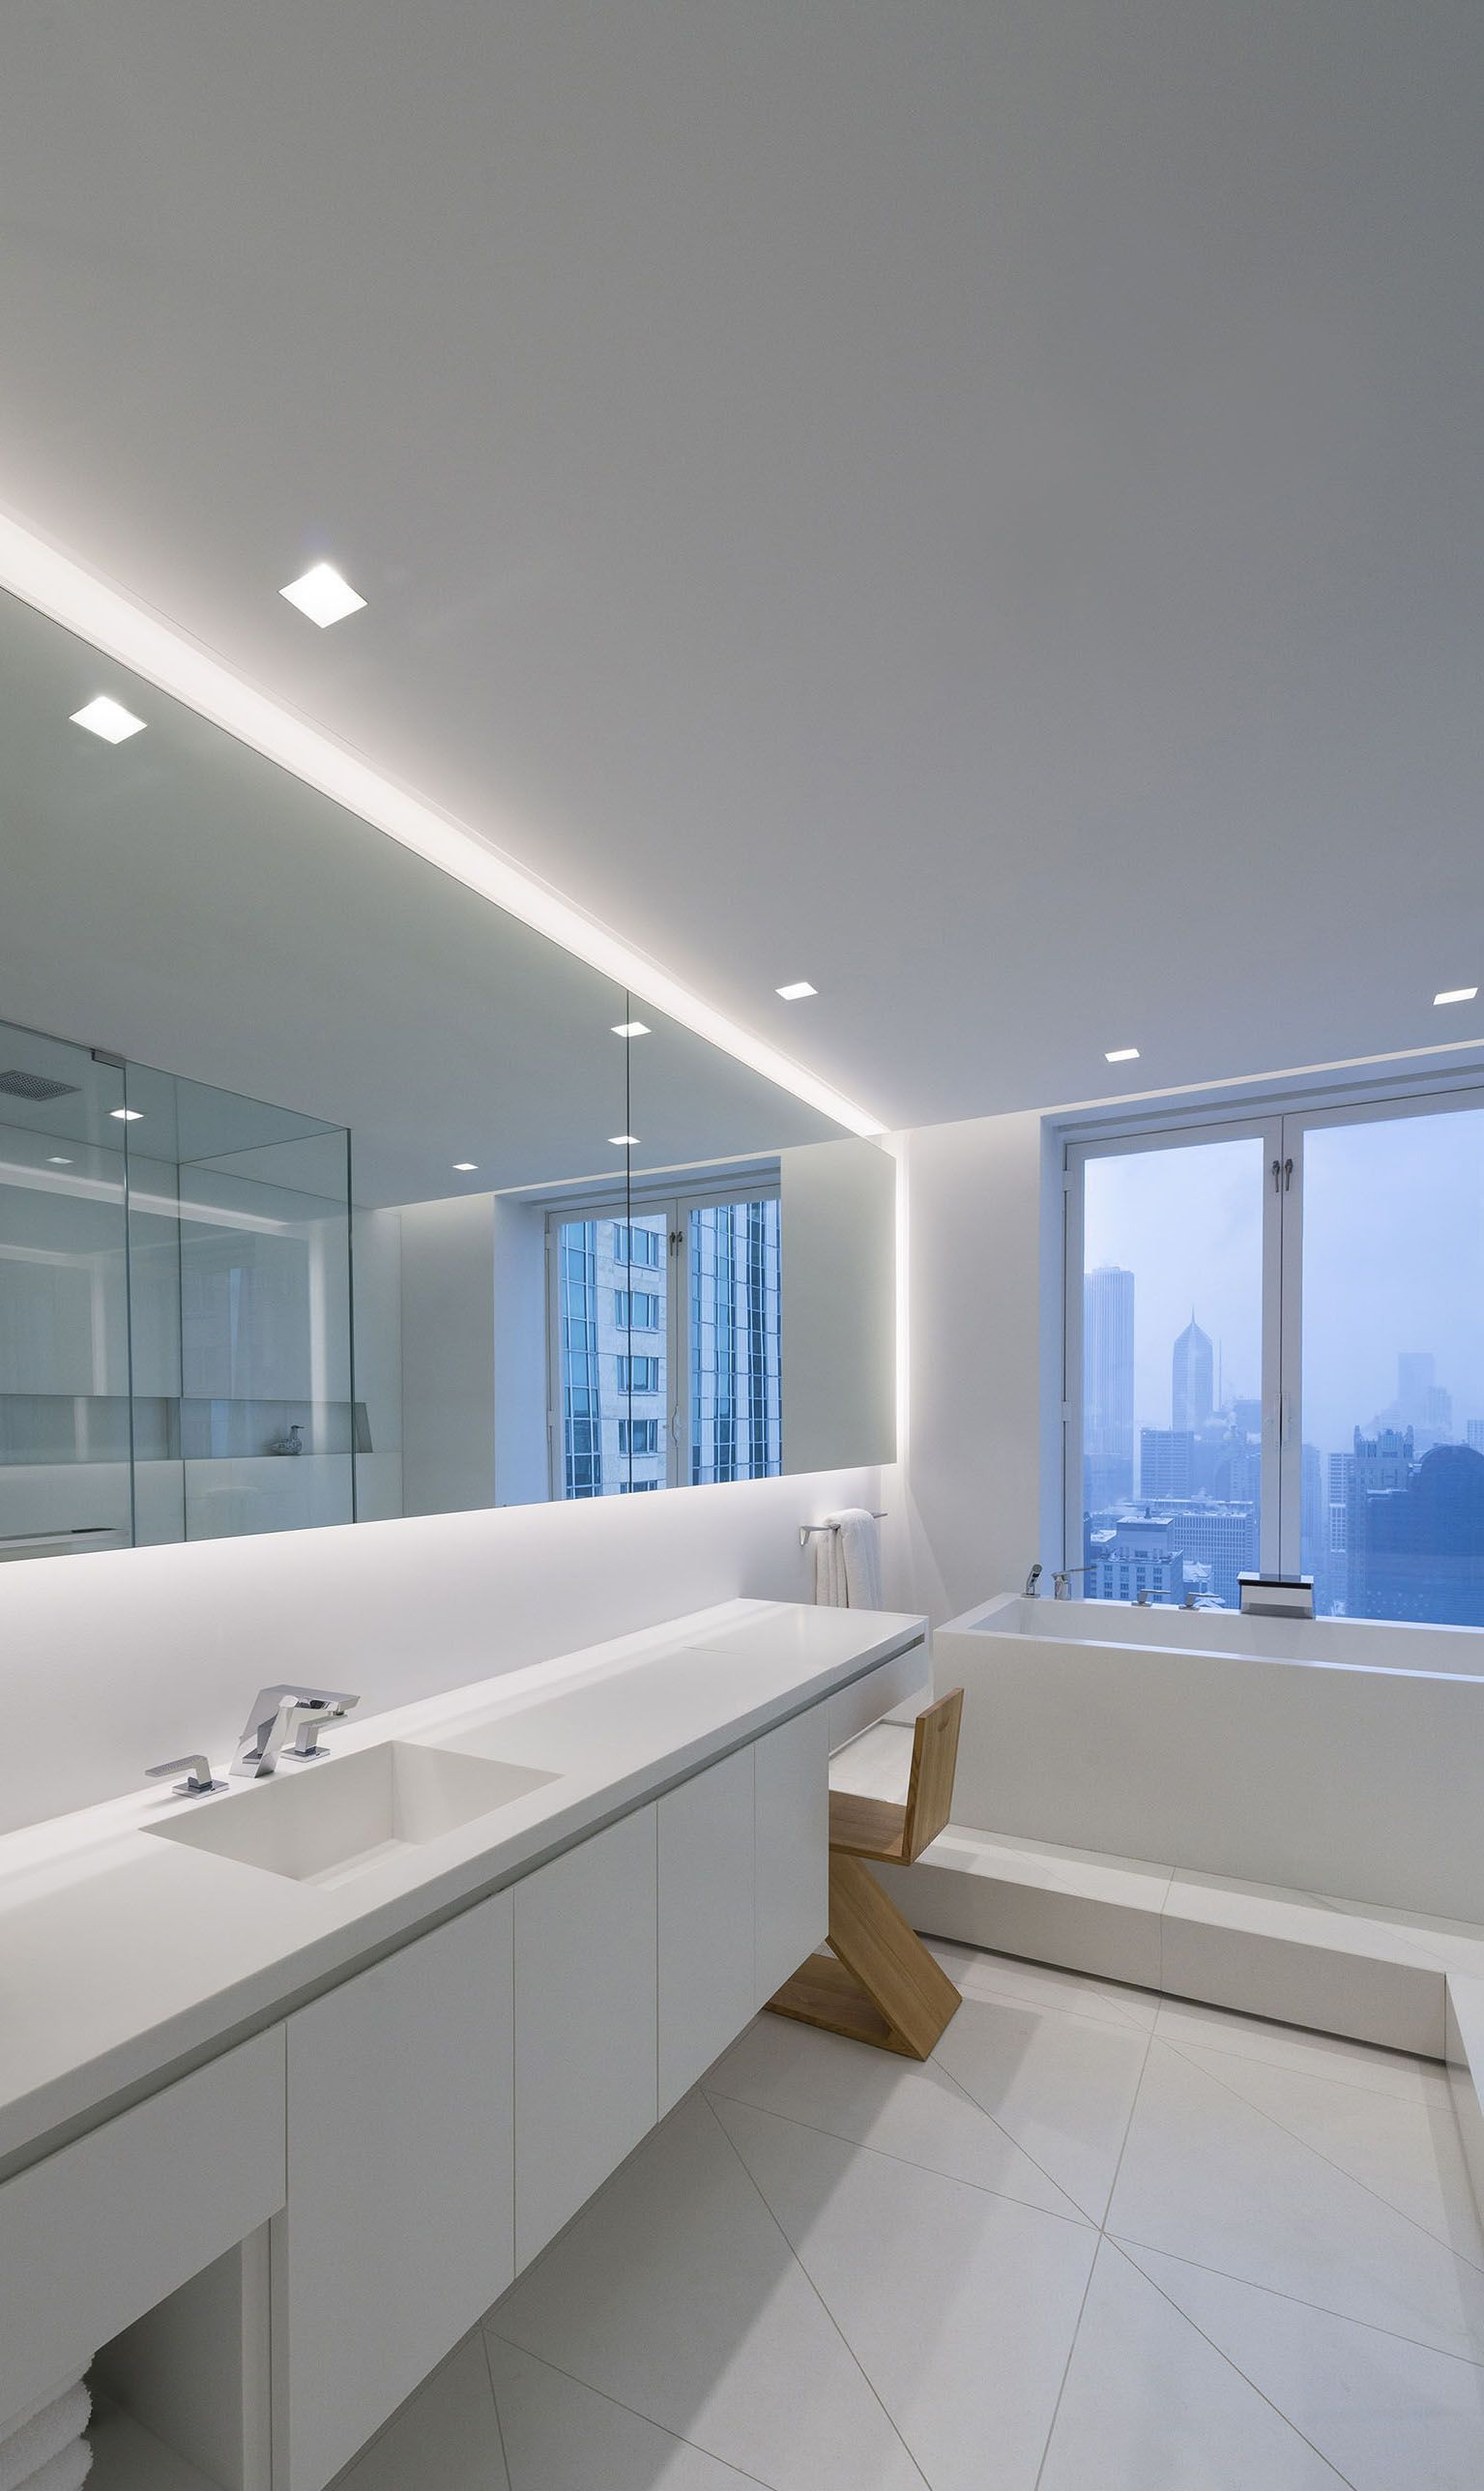 A lighting idea for contempporary bathrooms modern led for Contemporary bathroom lighting ideas